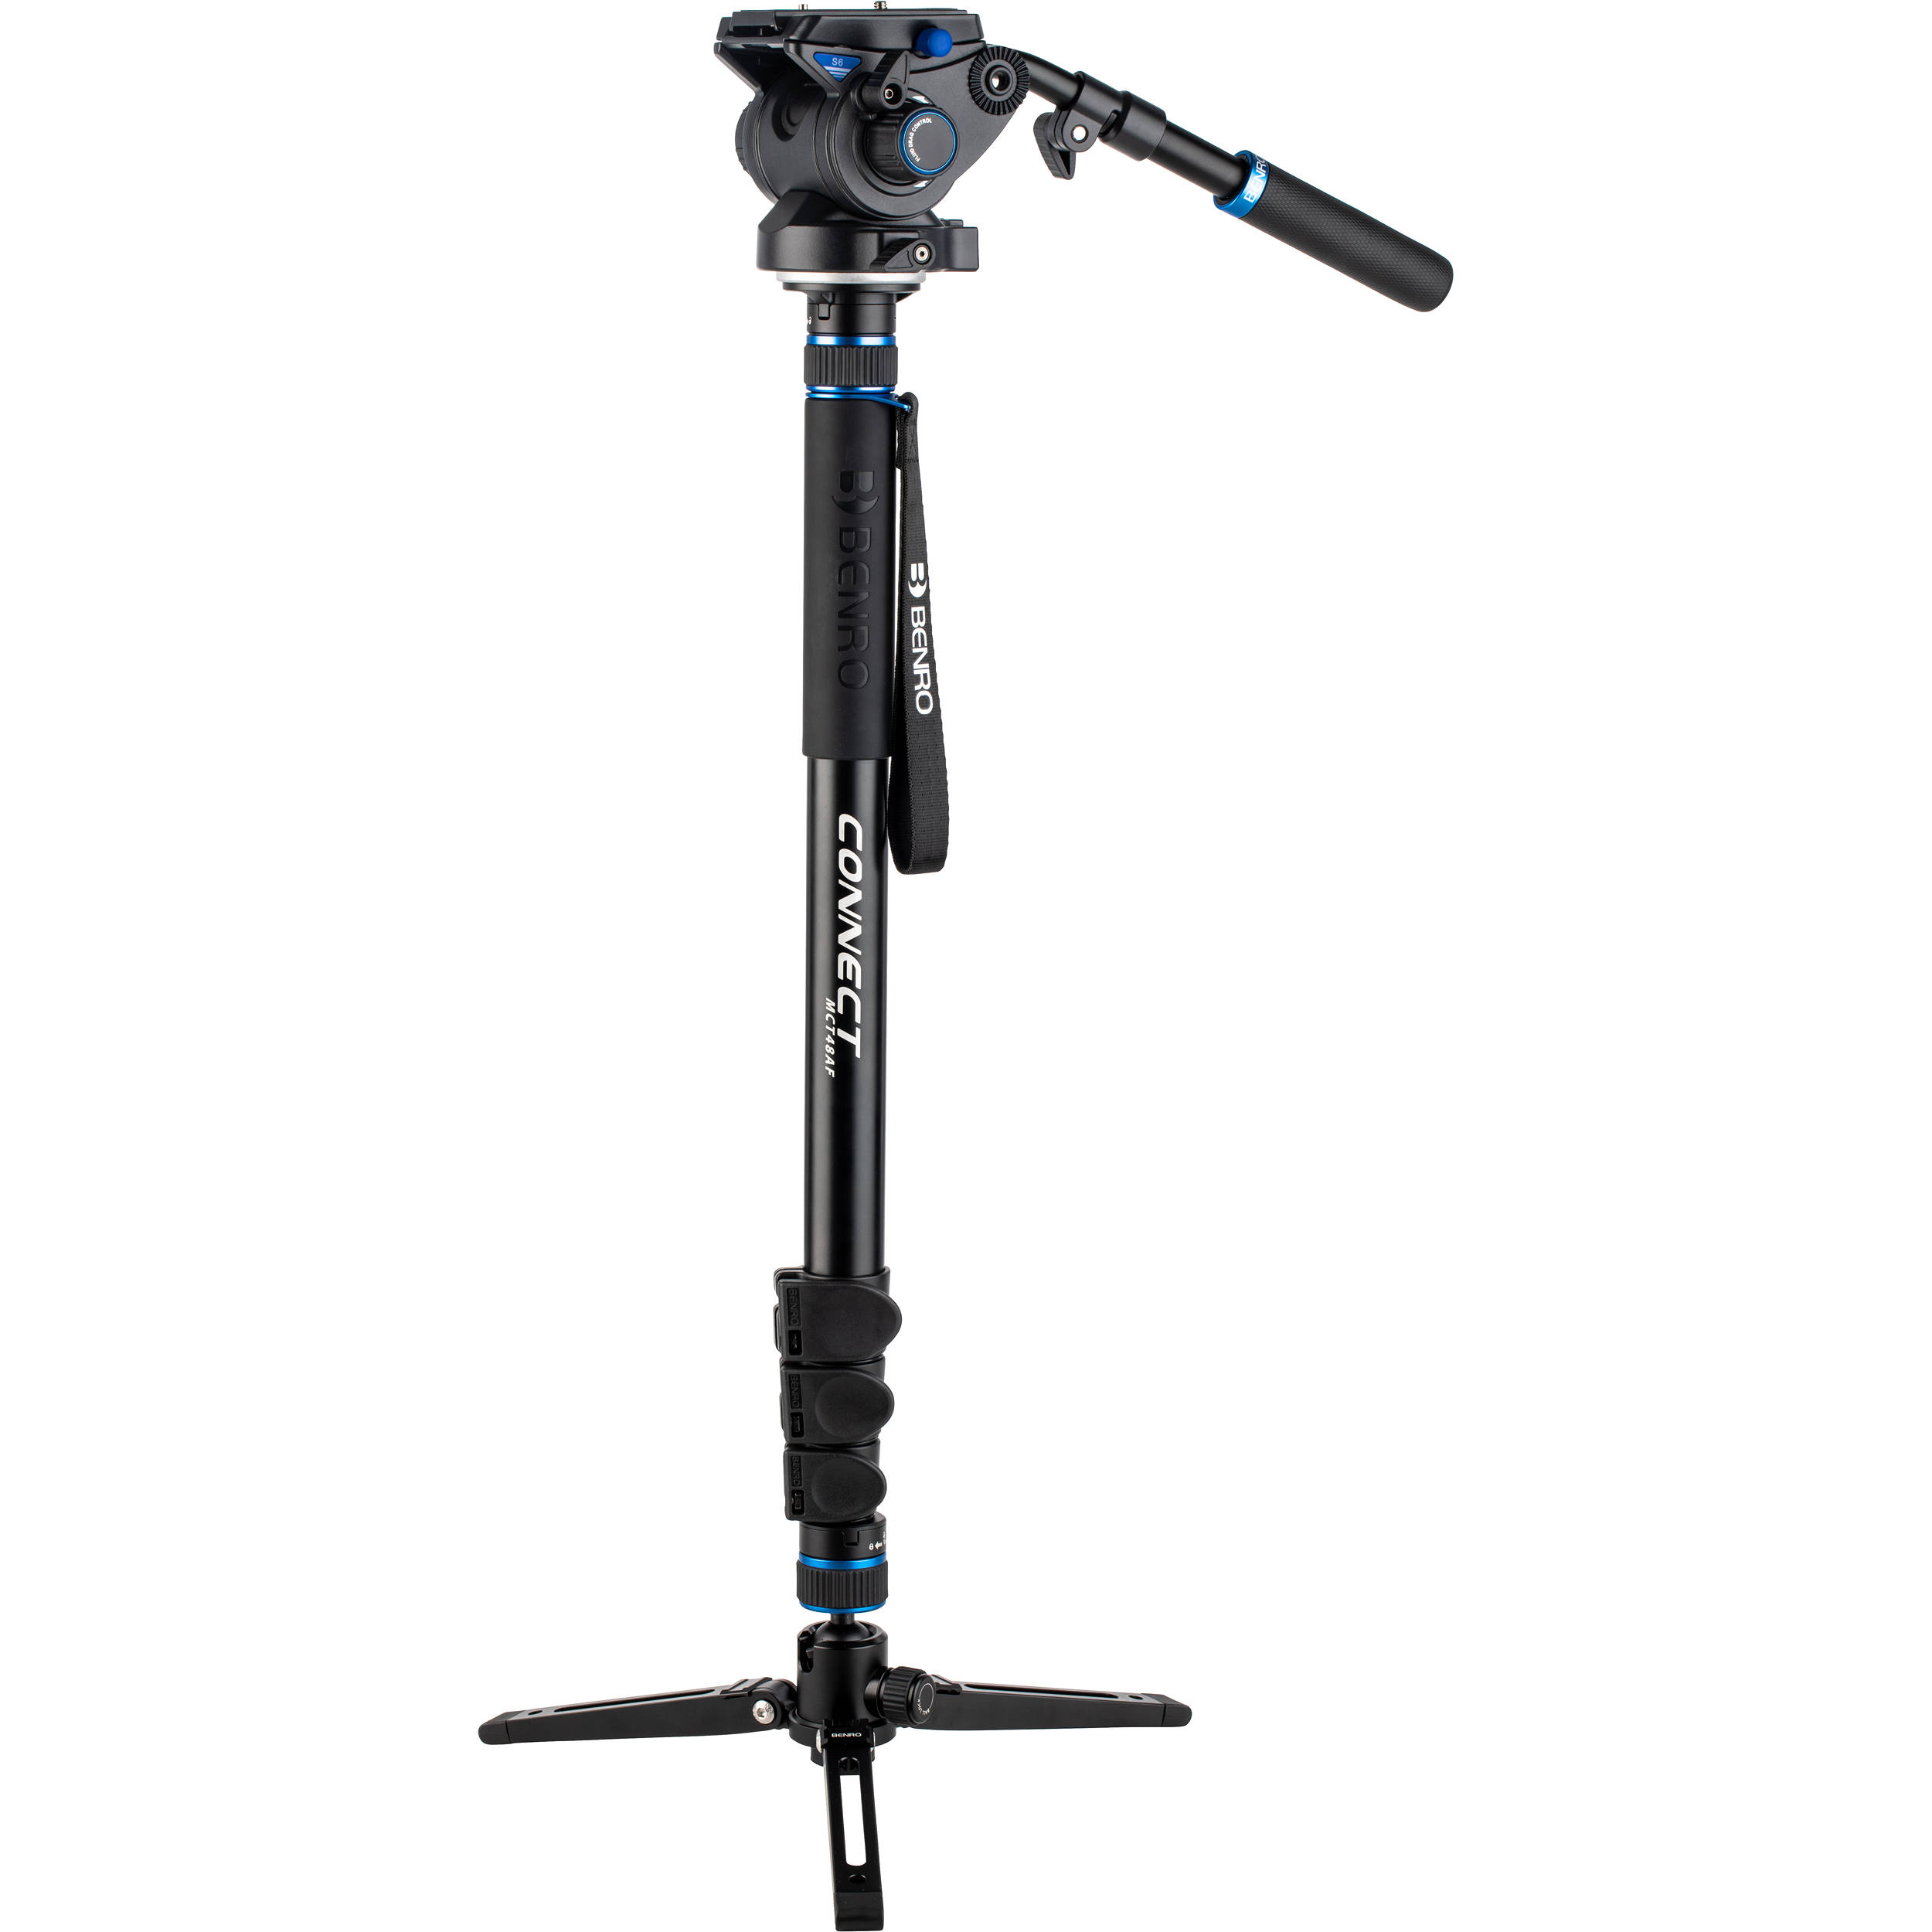 BENRO Connect S6 PRO Video Monopod Kit MCT48AFS6PRO